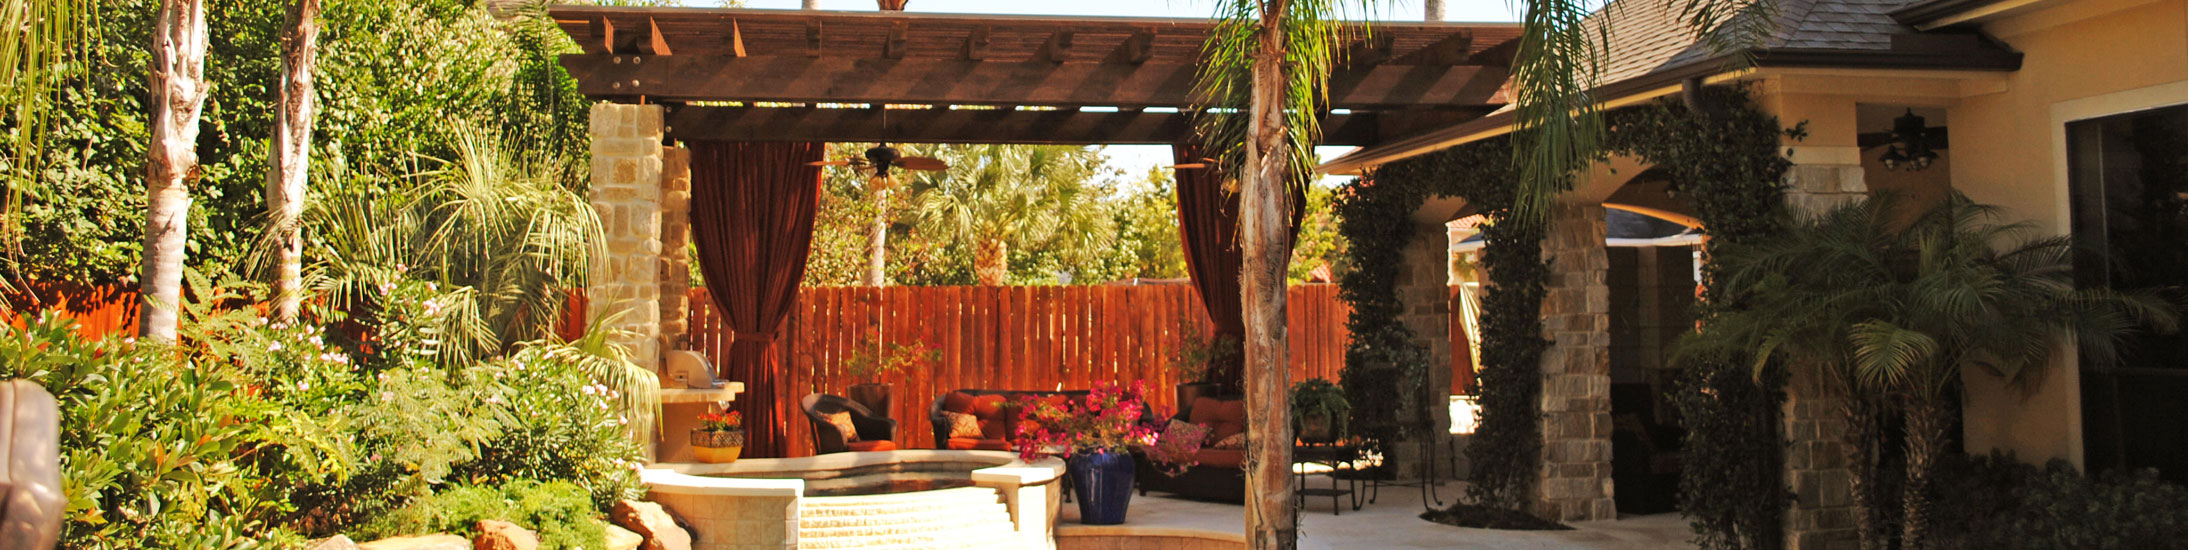 Katy Landscape Pergola Photo